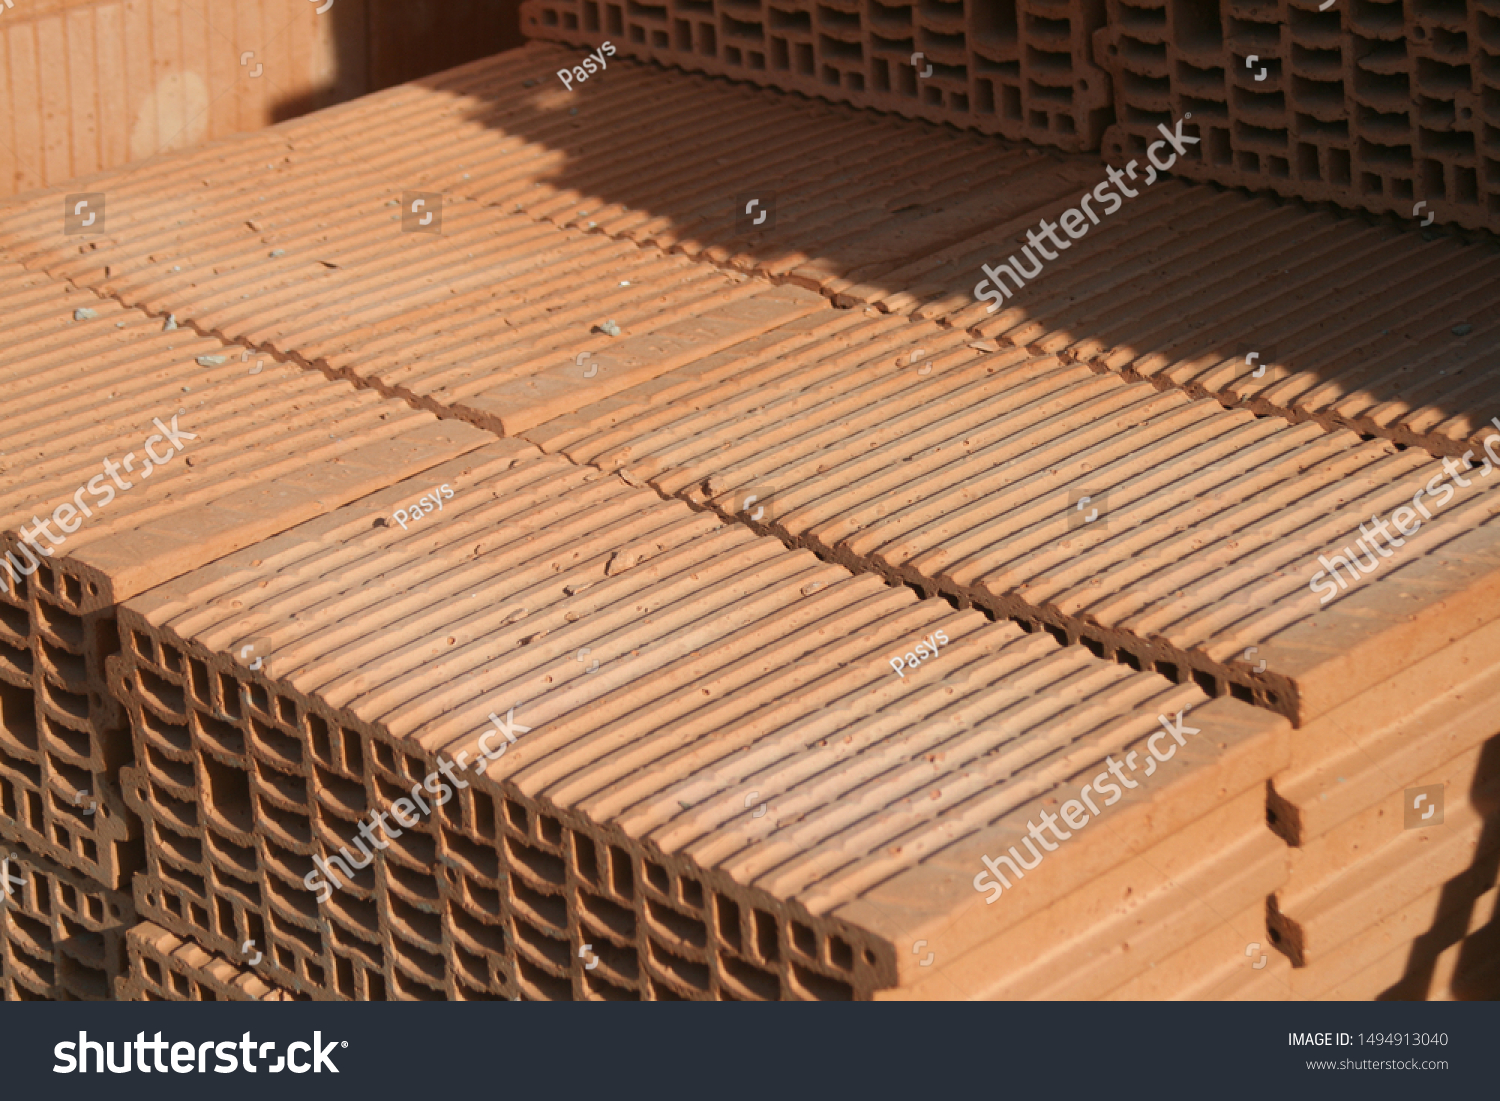 stock-photo-stacked-brick-pieces-of-poro